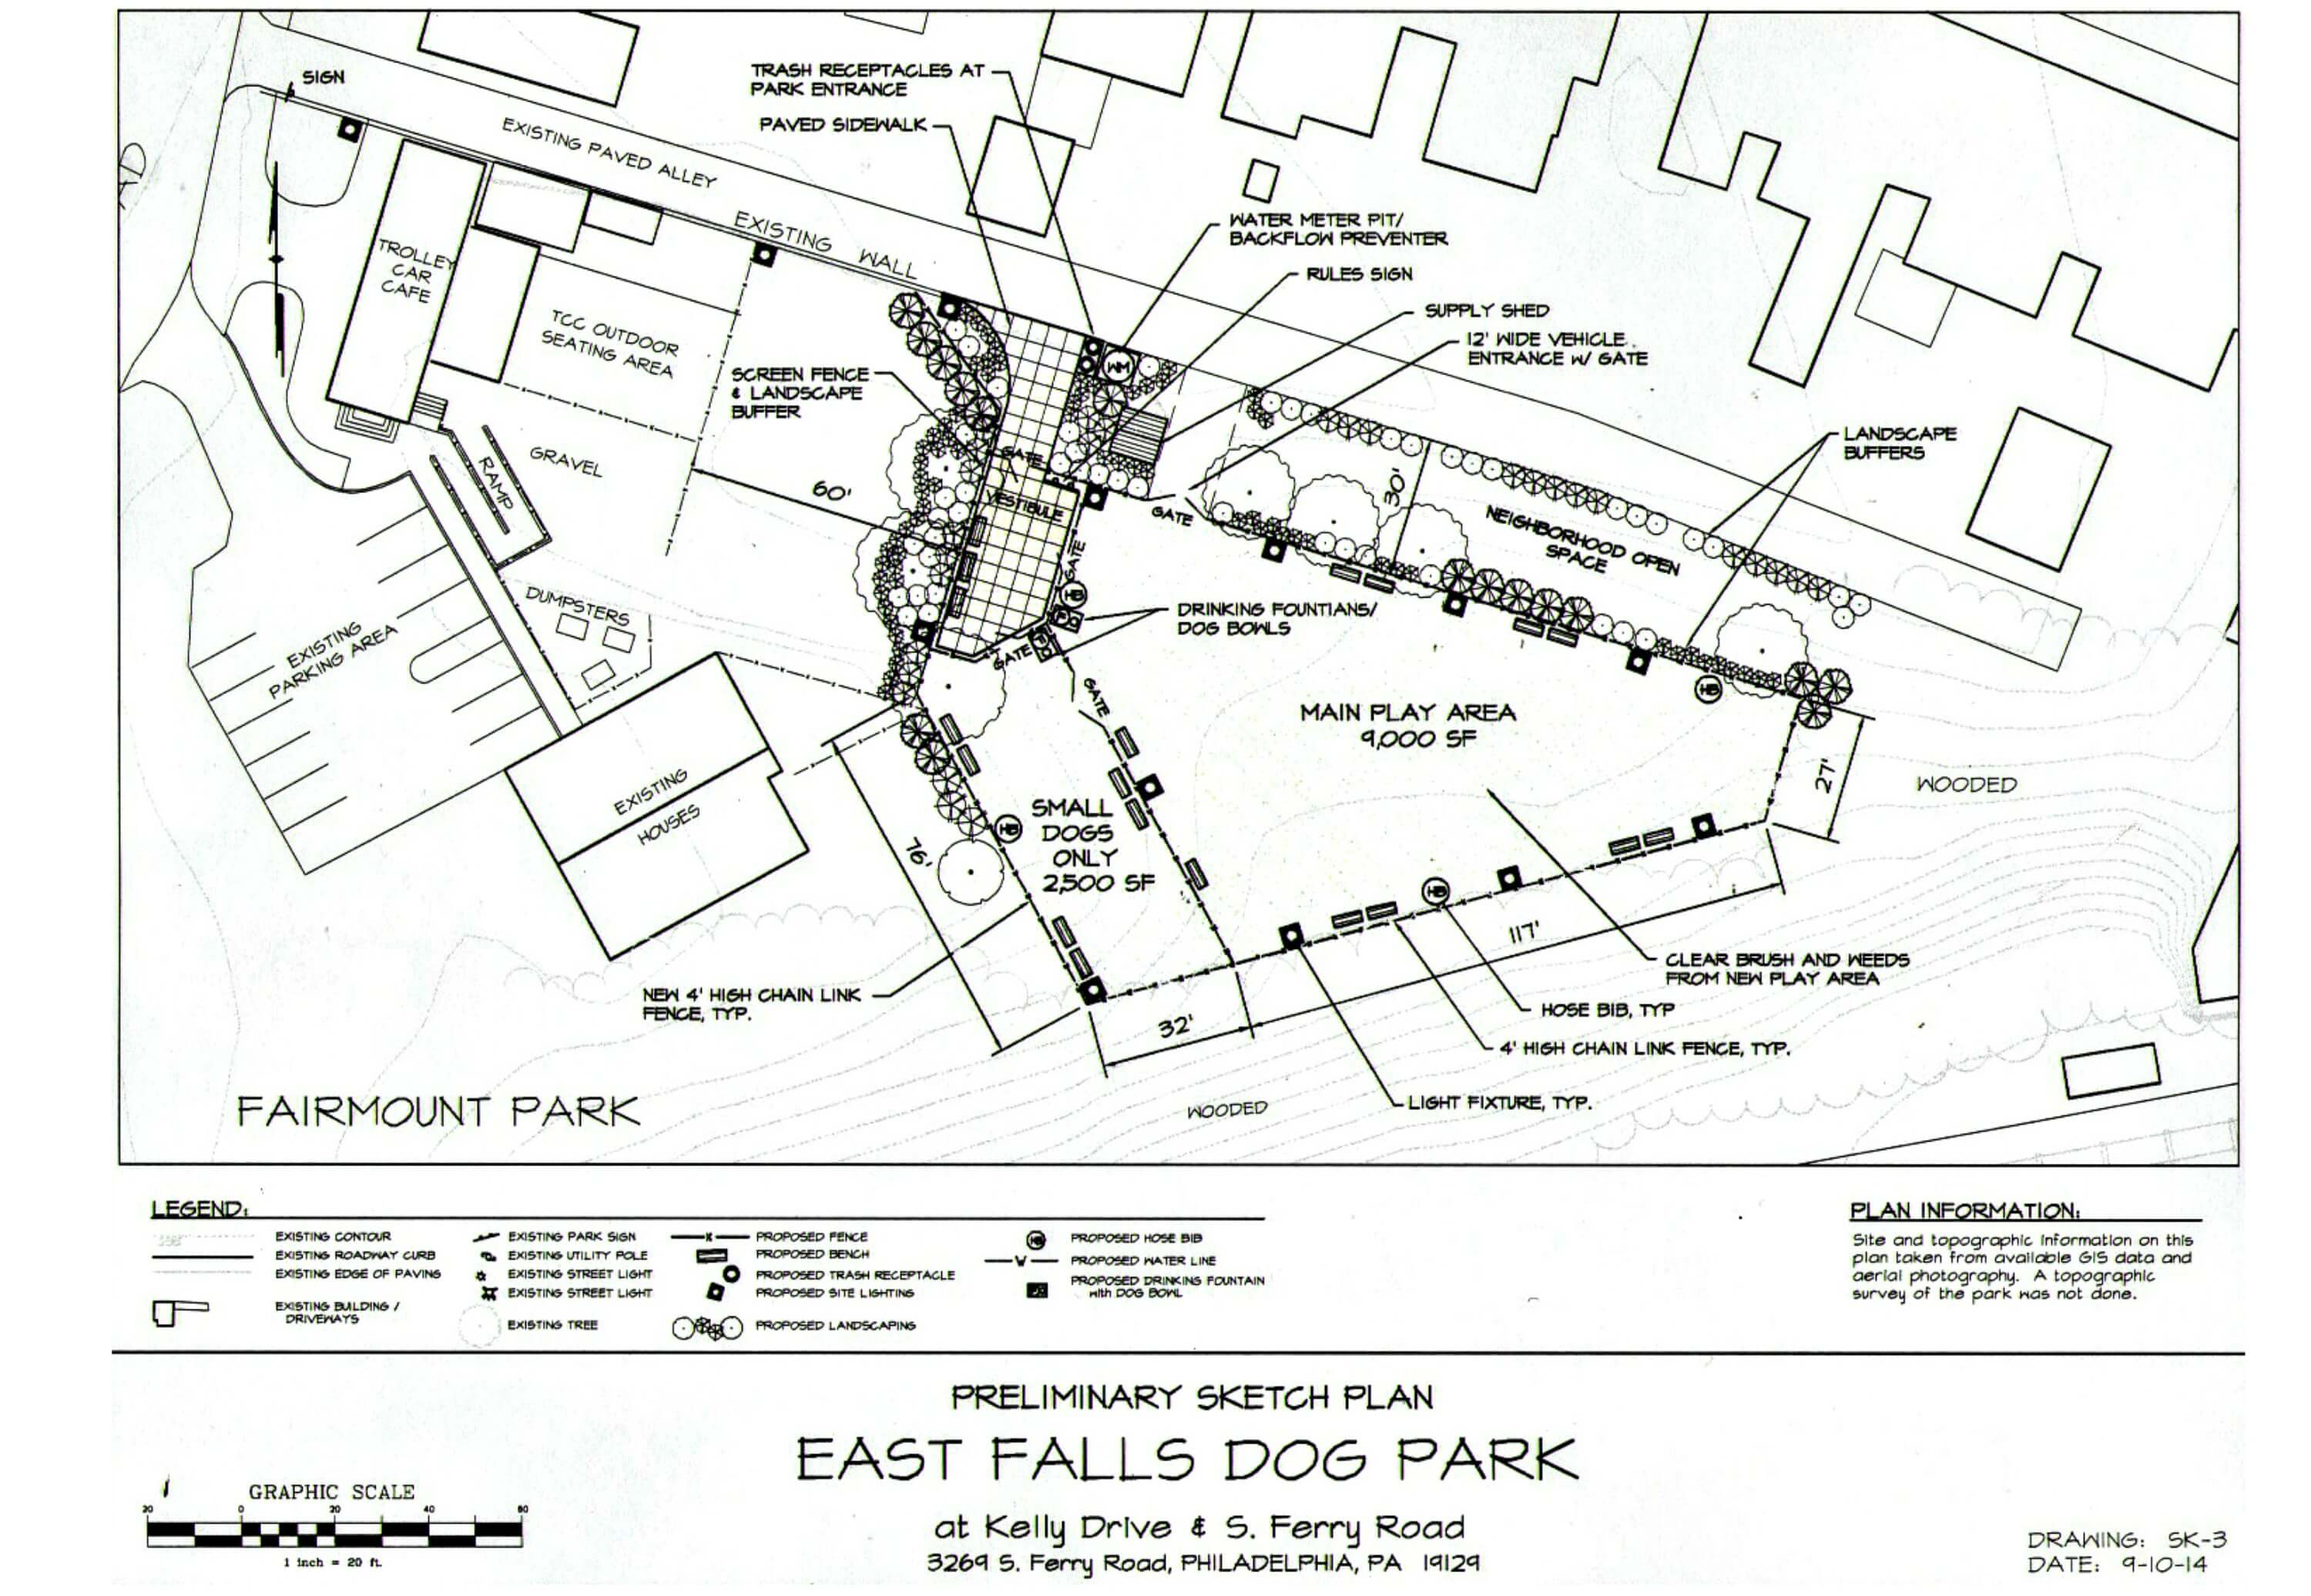 Eastfallslocal trolley car proposed dog park site aerial rendering resize